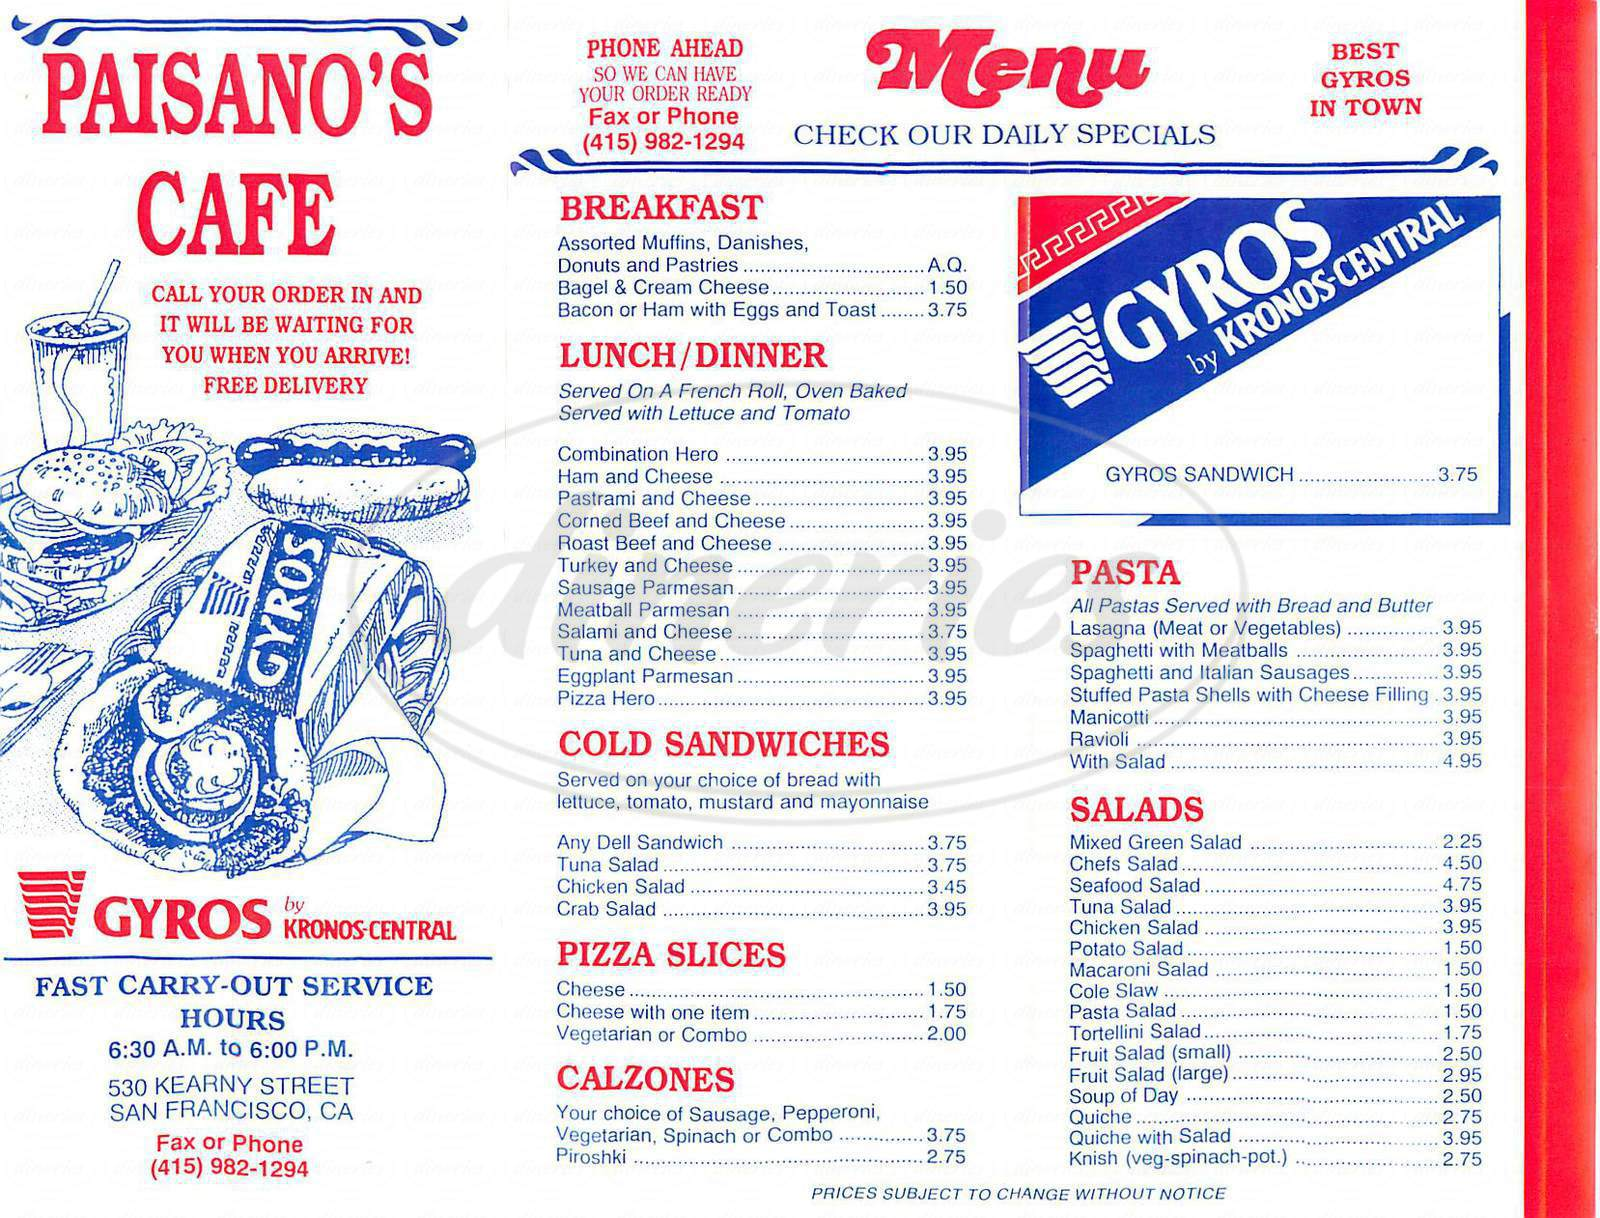 Big menu for Paisanos Cafe, San Francisco